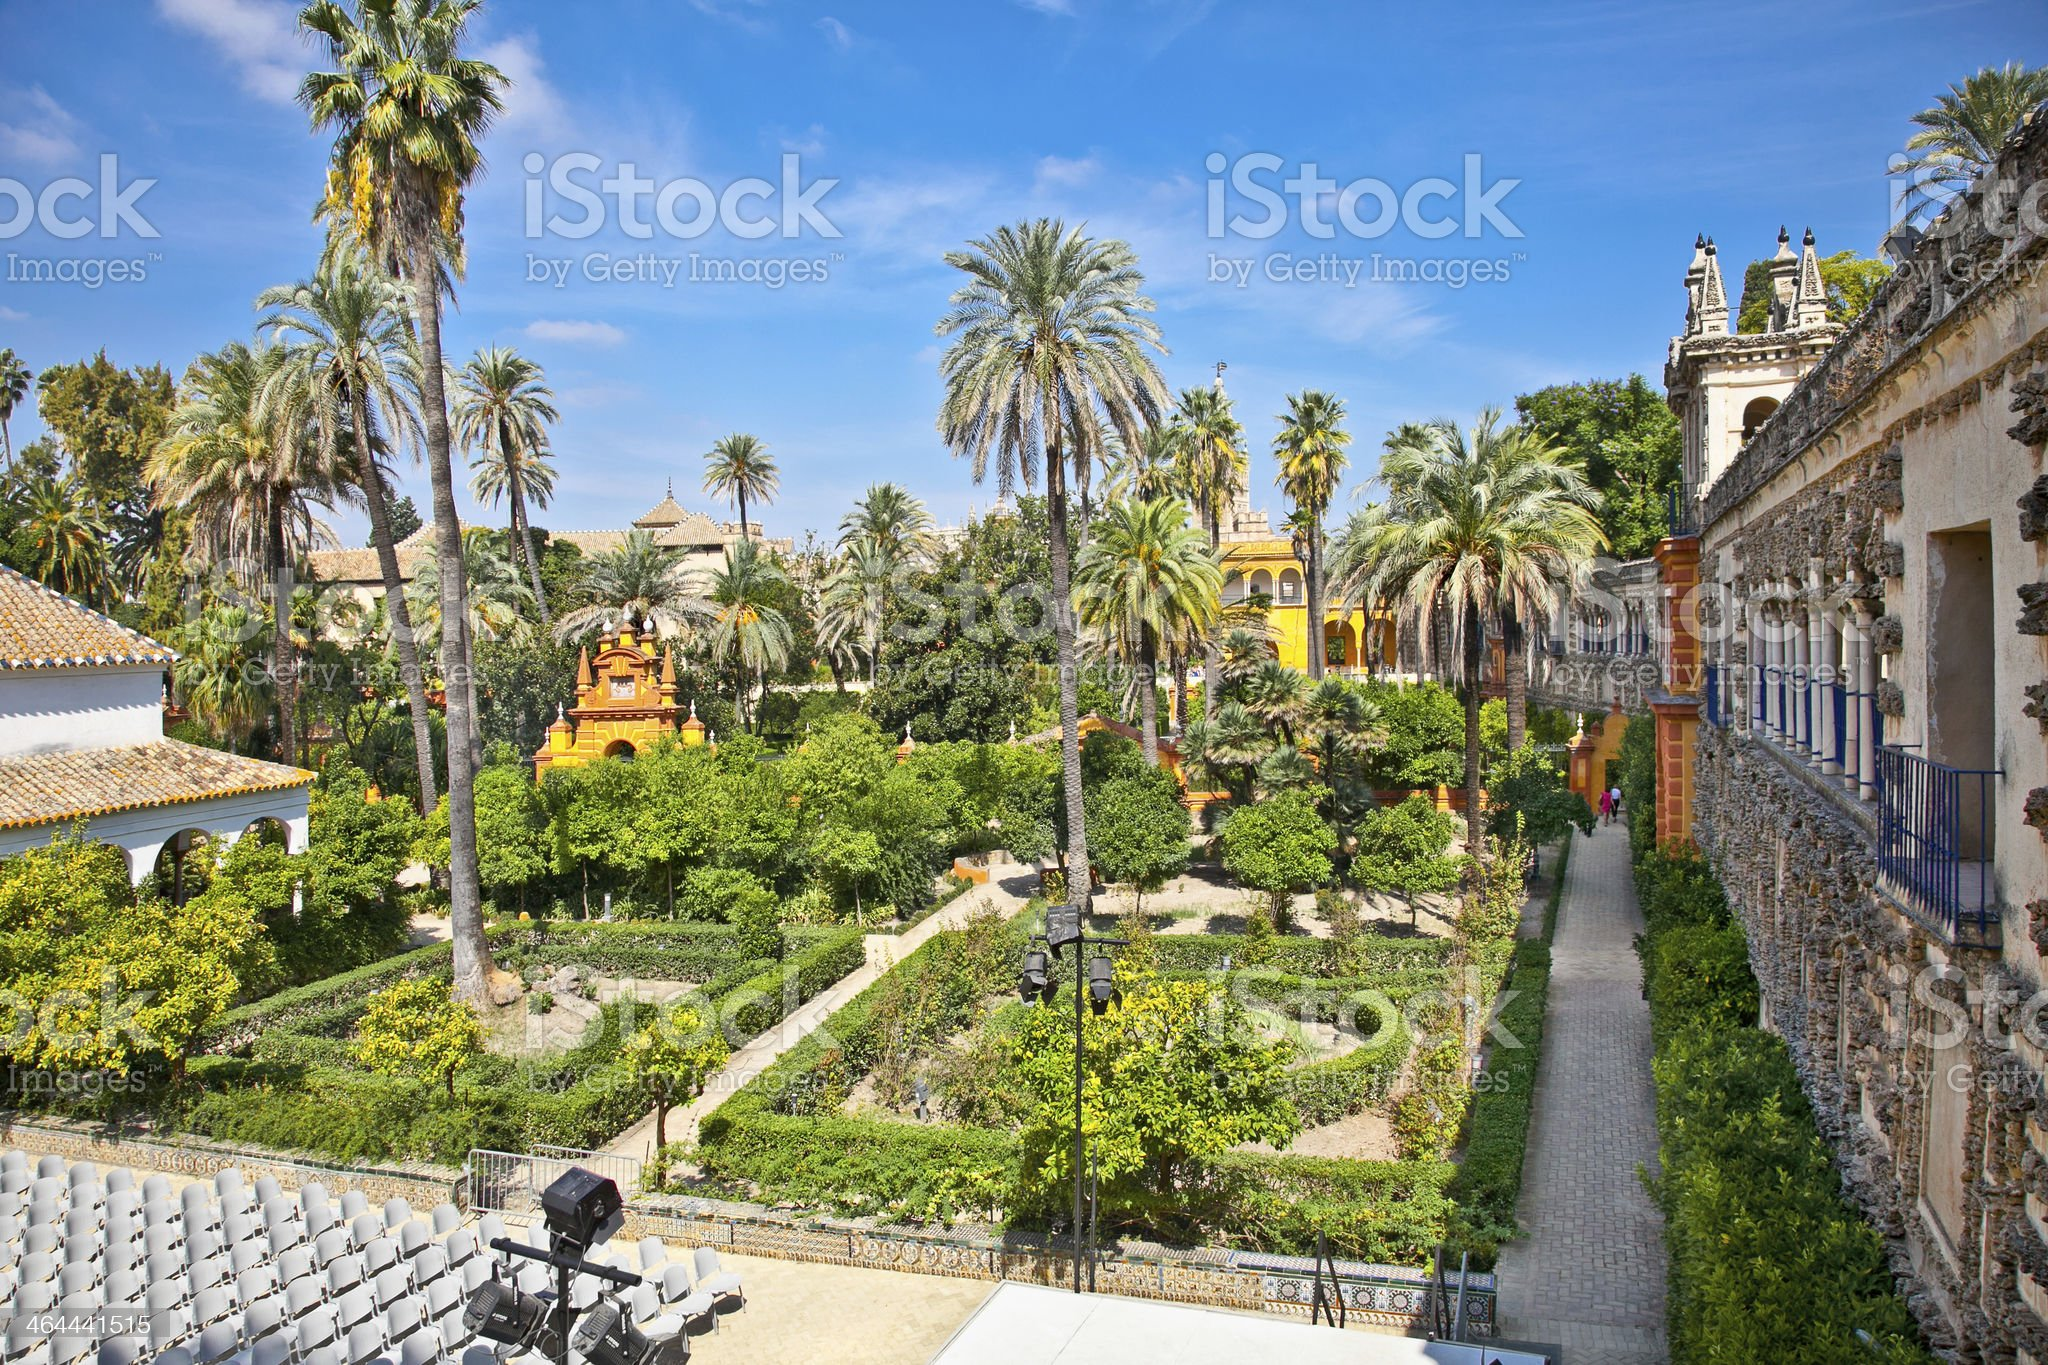 Real Alcazar Gardens in Seville, Spain on a nice day royalty-free stock photo